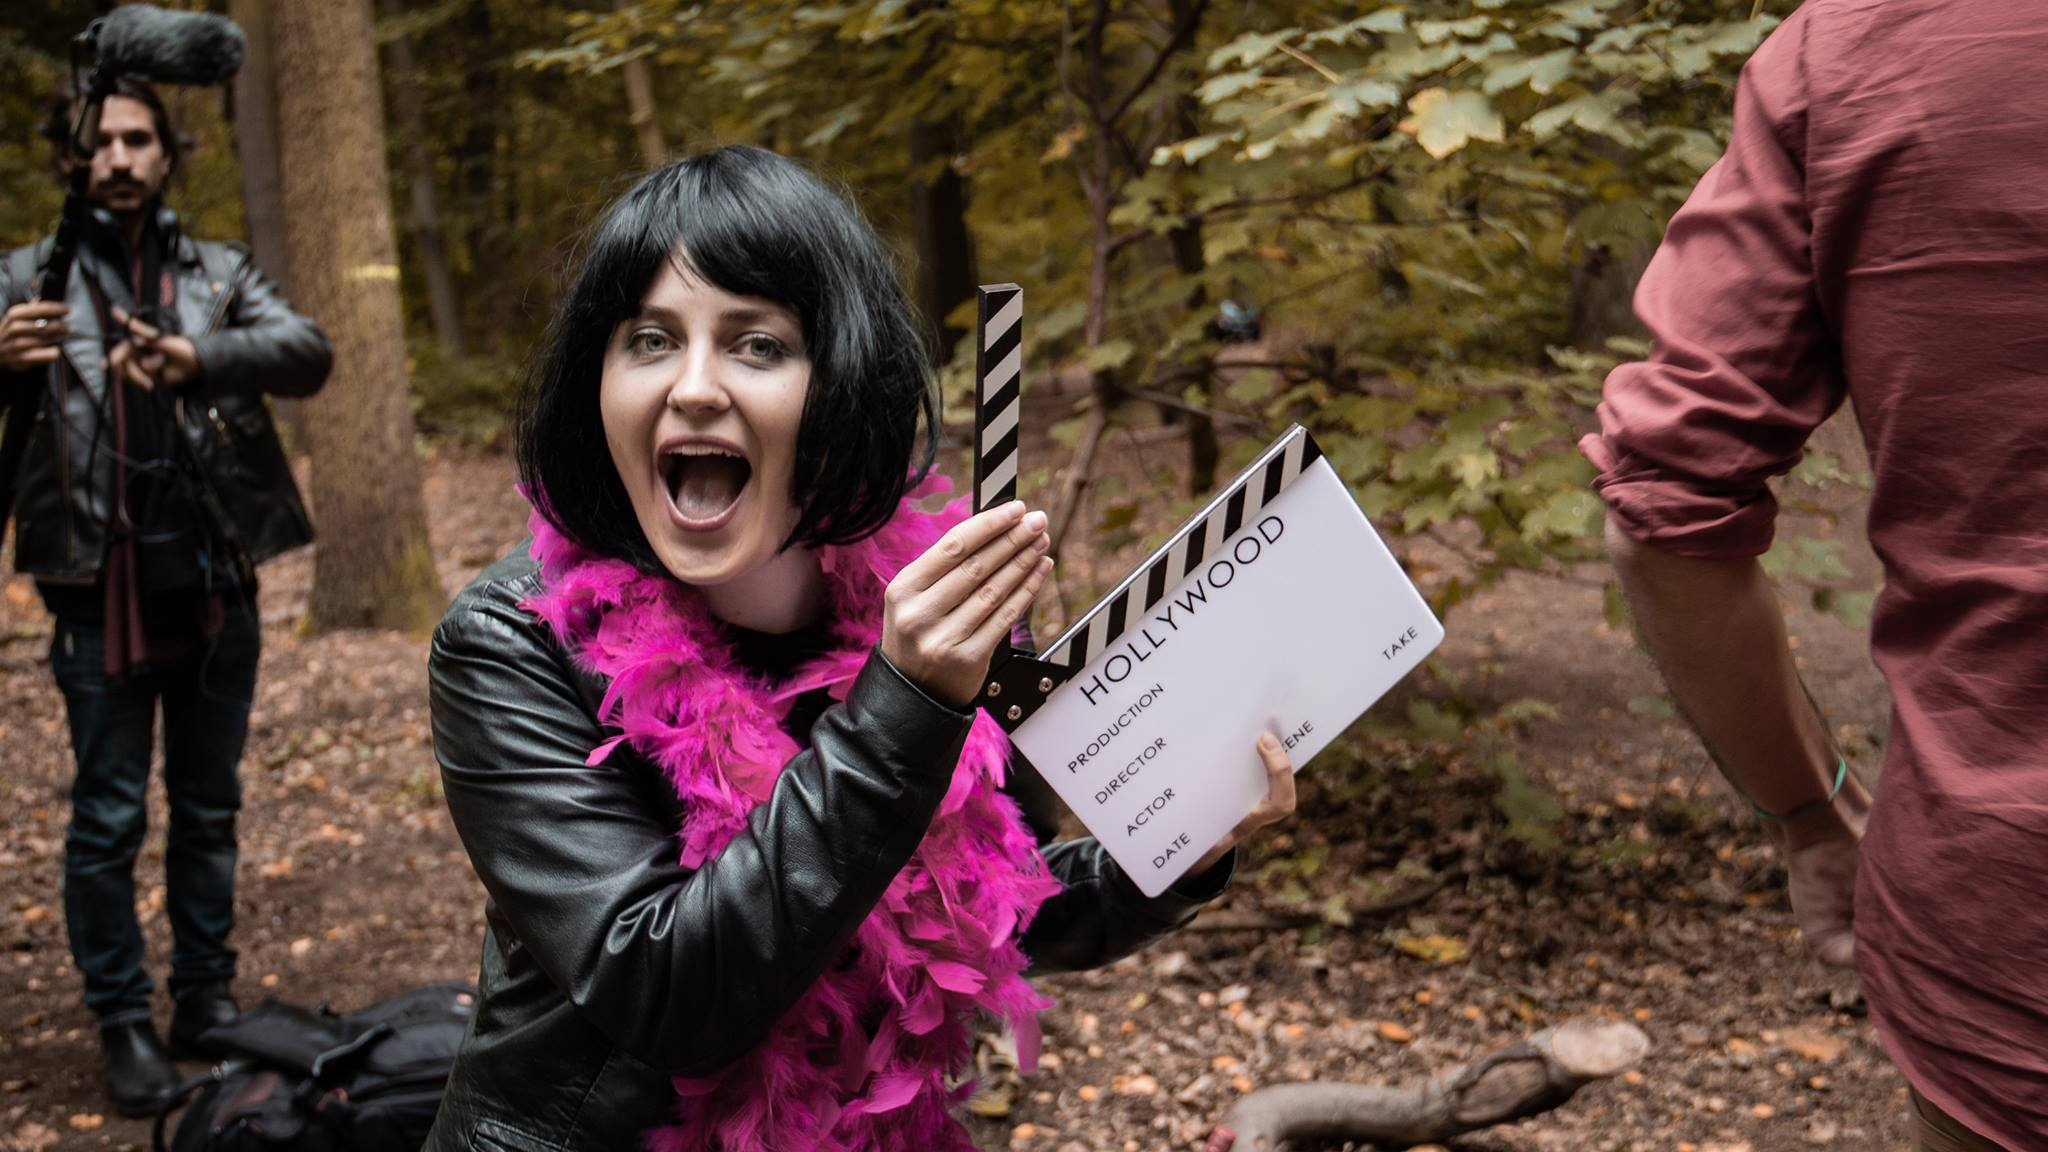 Go Behind the Scenes of our Film Production Students' Year 1 Films